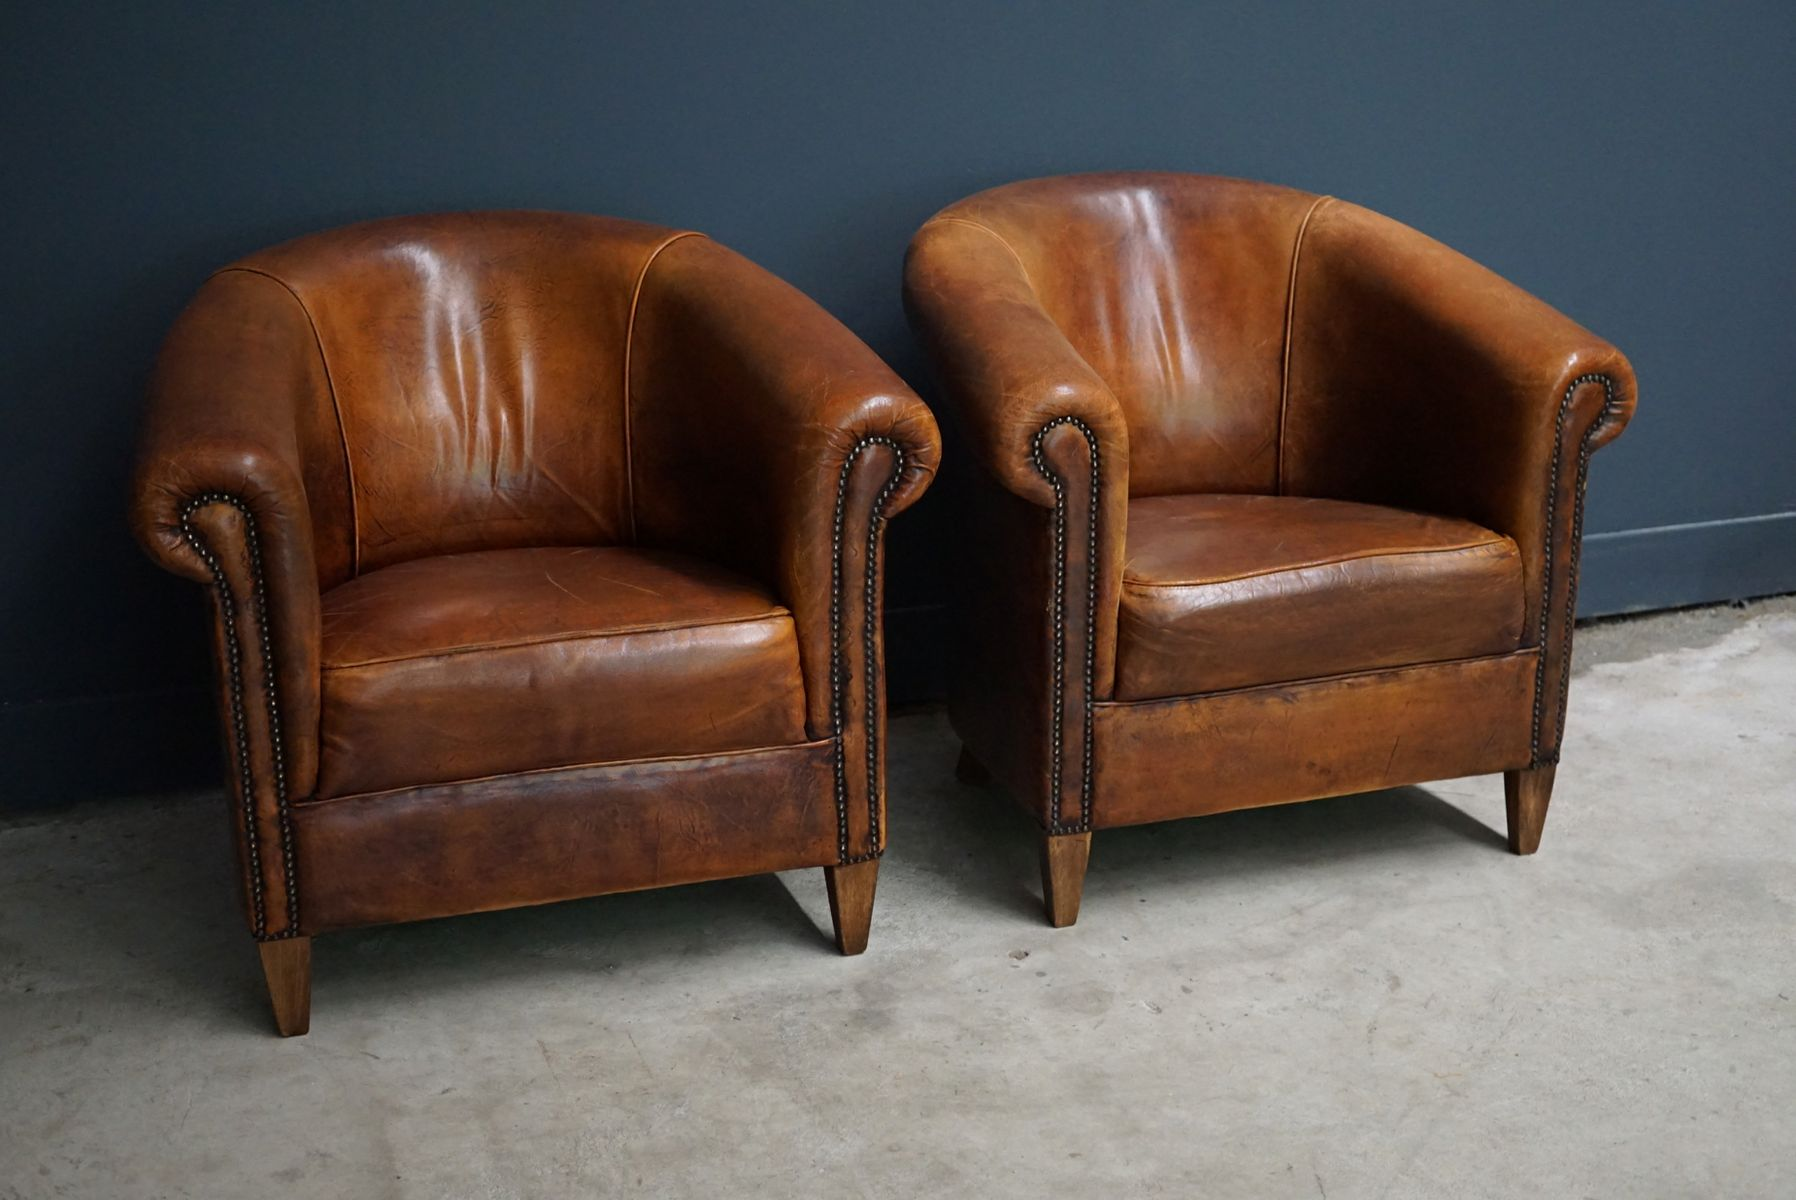 Vintage Dutch Cognac Leather Club Chairs Set of 2 for sale at Pamono